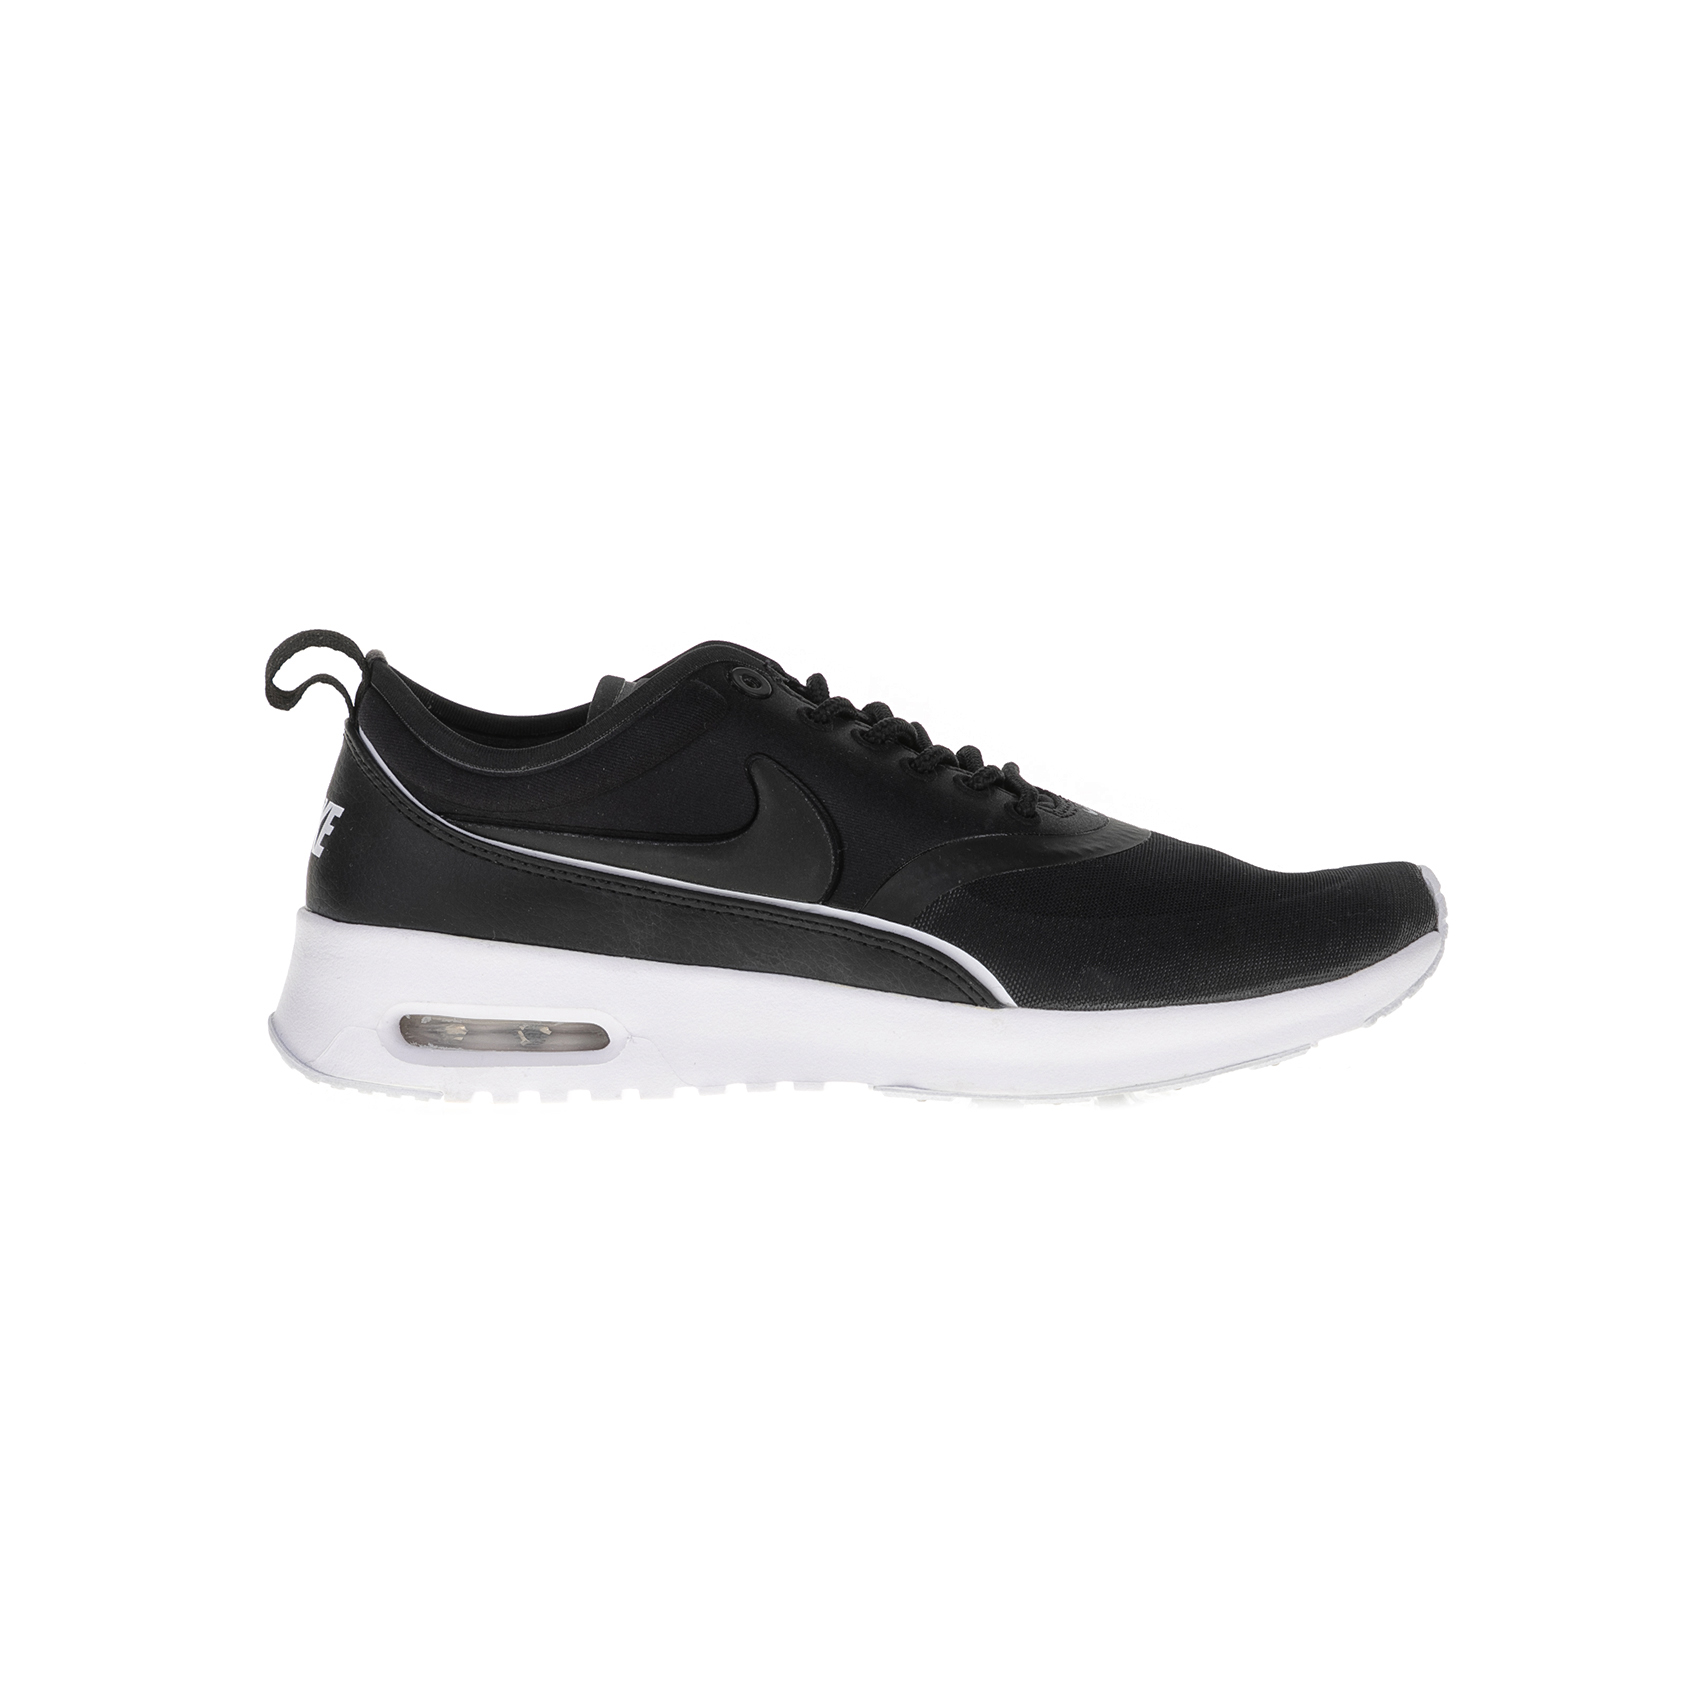 NIKE – Γυναικεία παπούτσια NIKE AIR MAX THEA ULTRA μαύρα